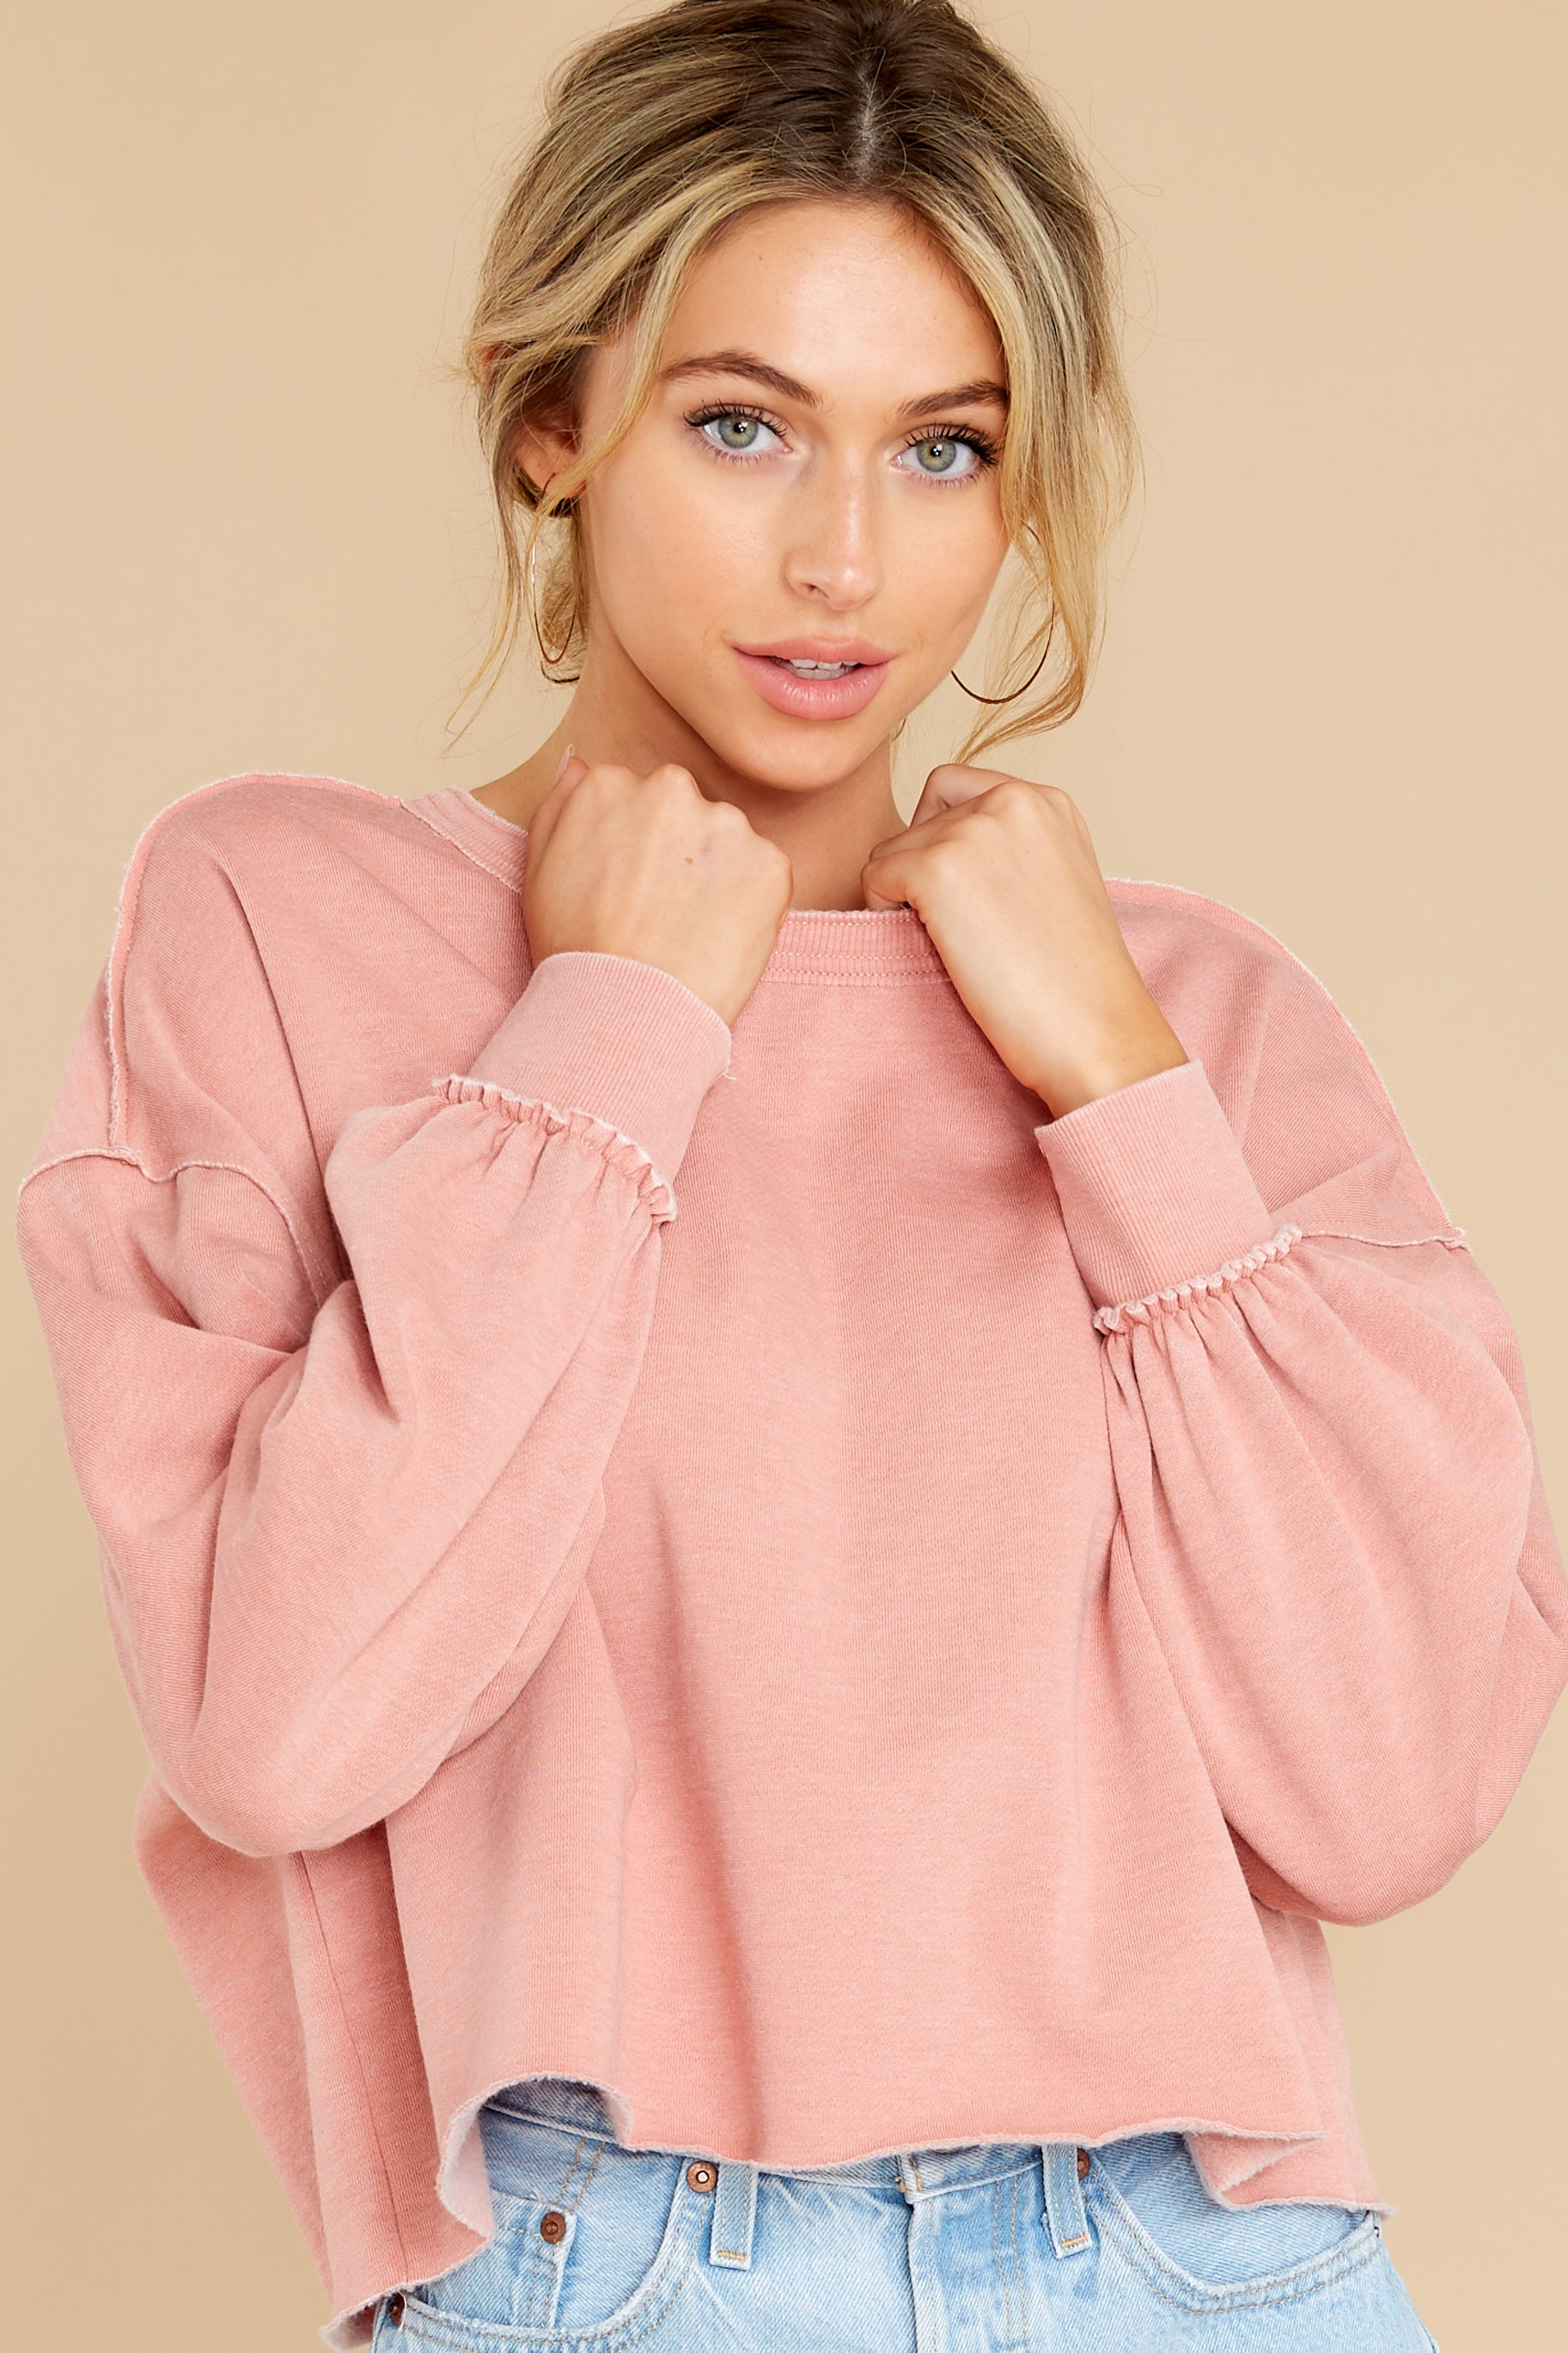 7 Tempest Petal Pink Sweatshirt at reddress.com